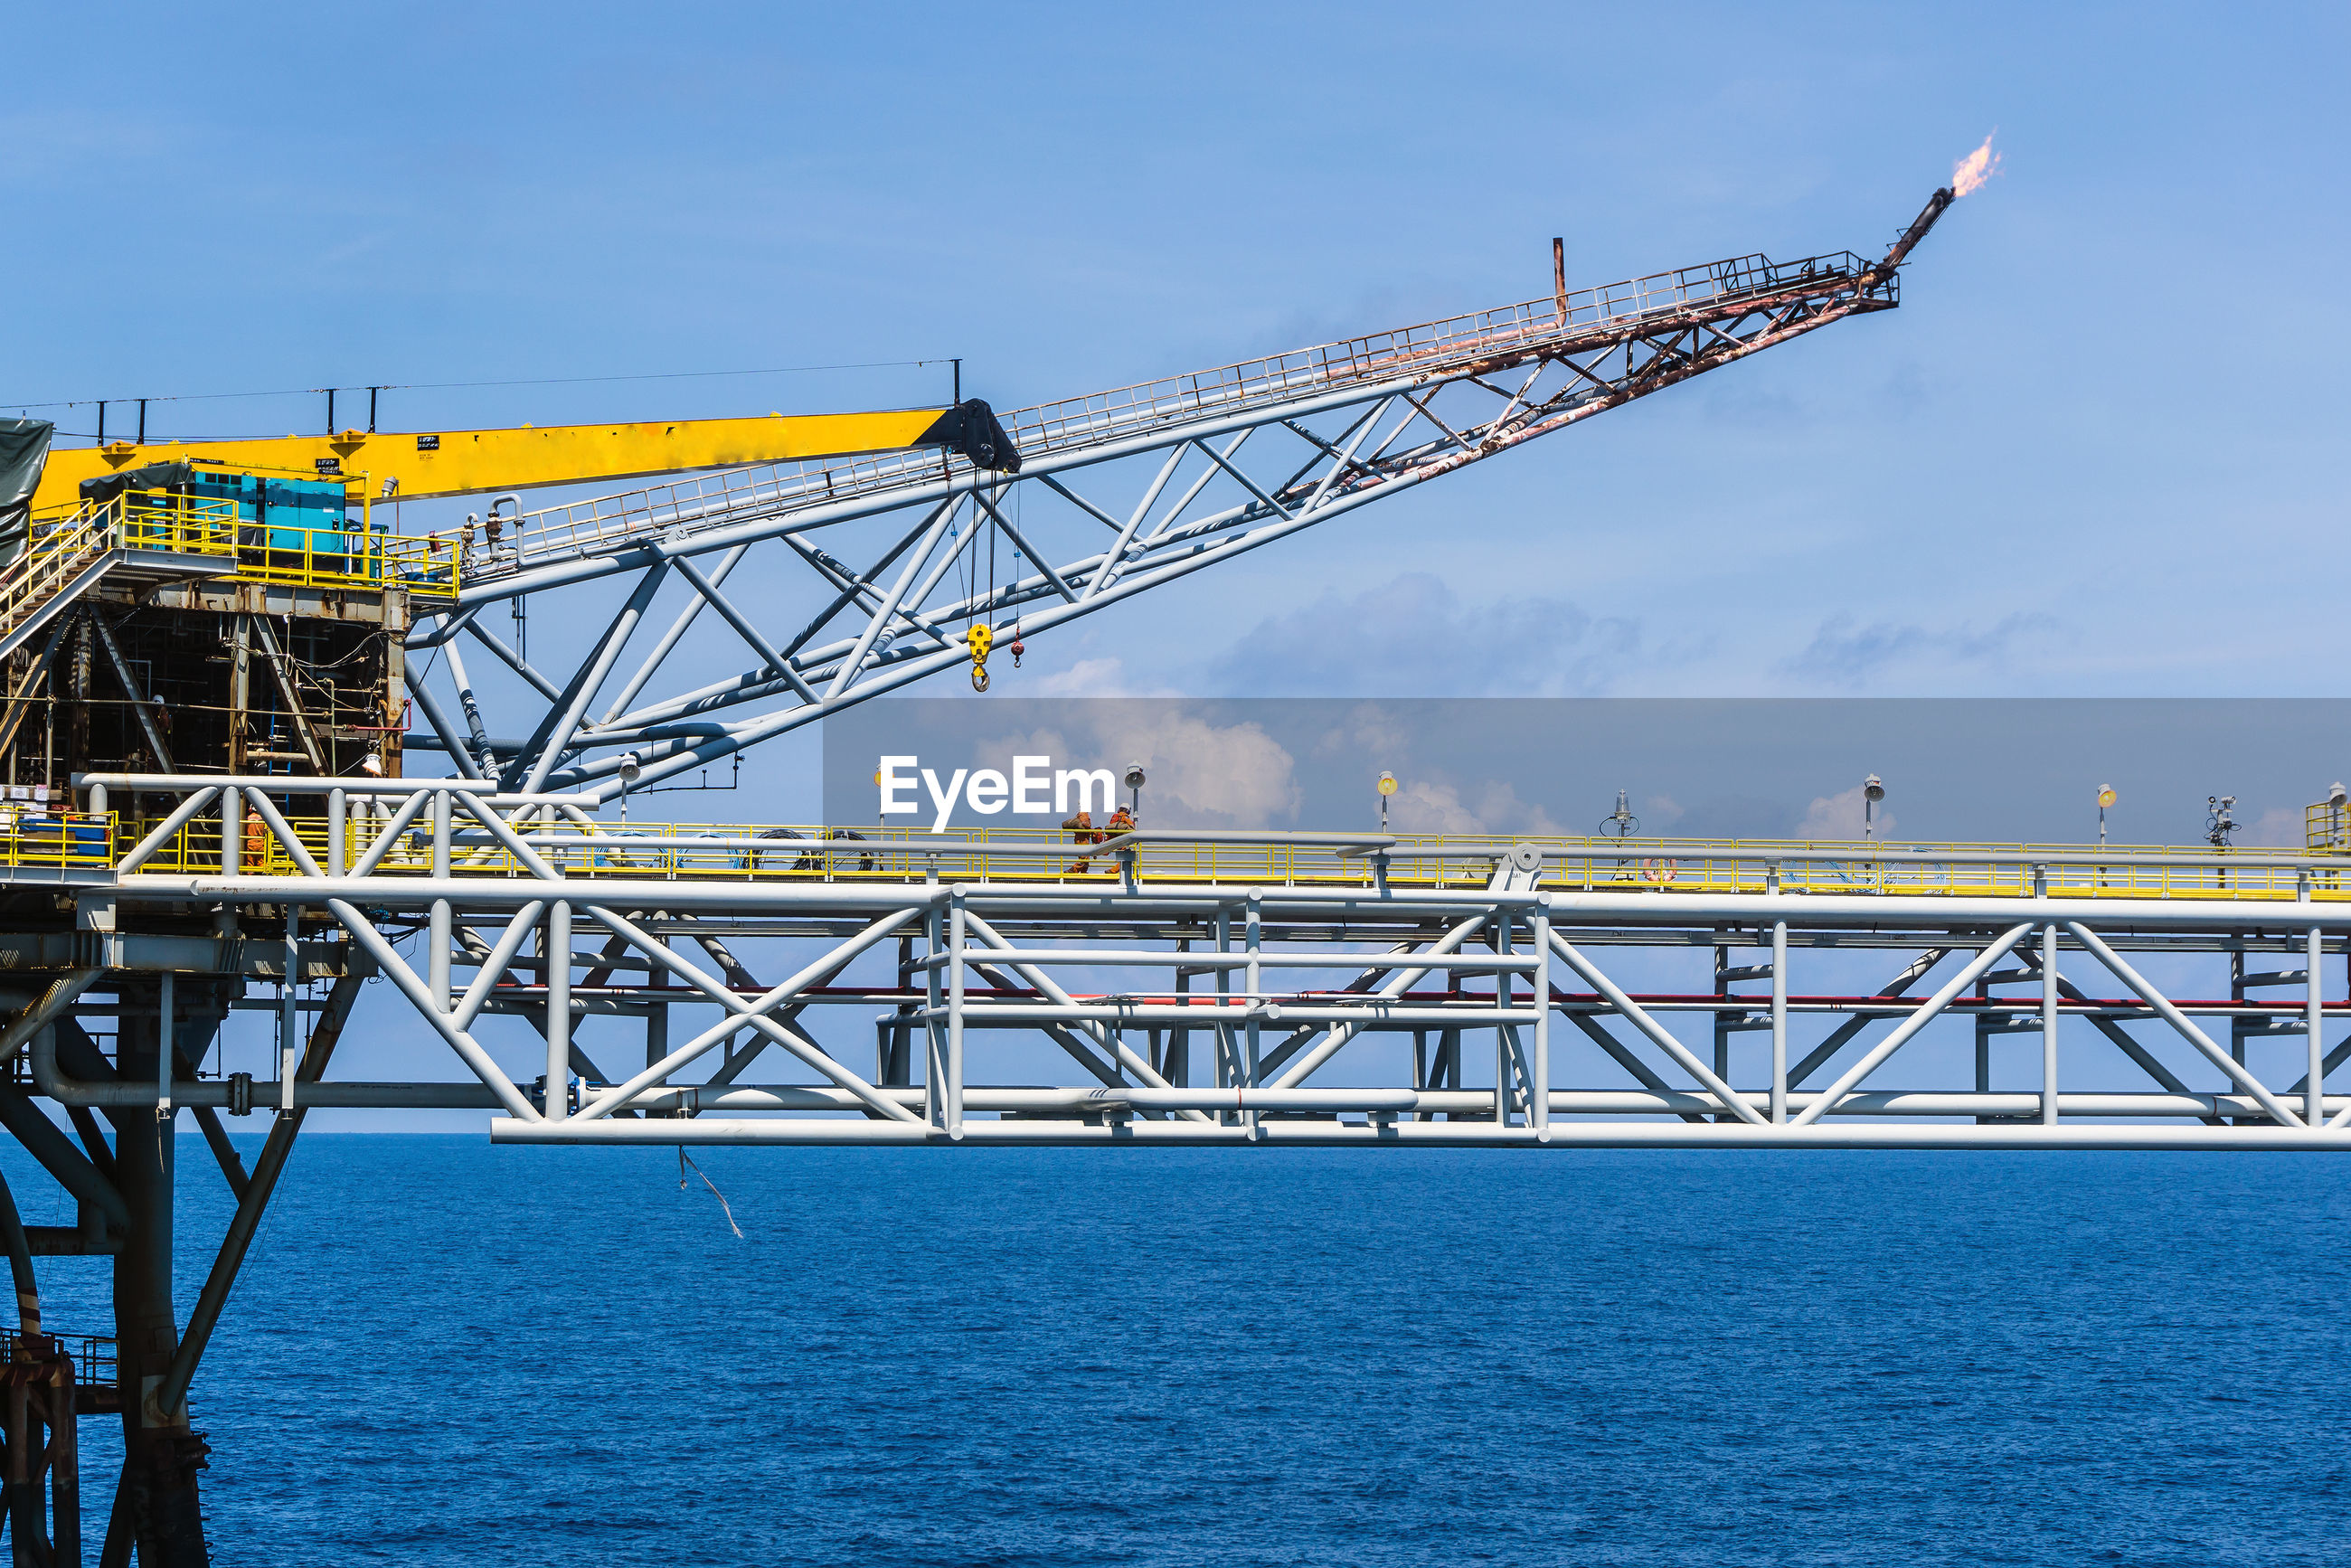 Bridge connecting between oil prodcution platforms at oil field with flare boom and crane